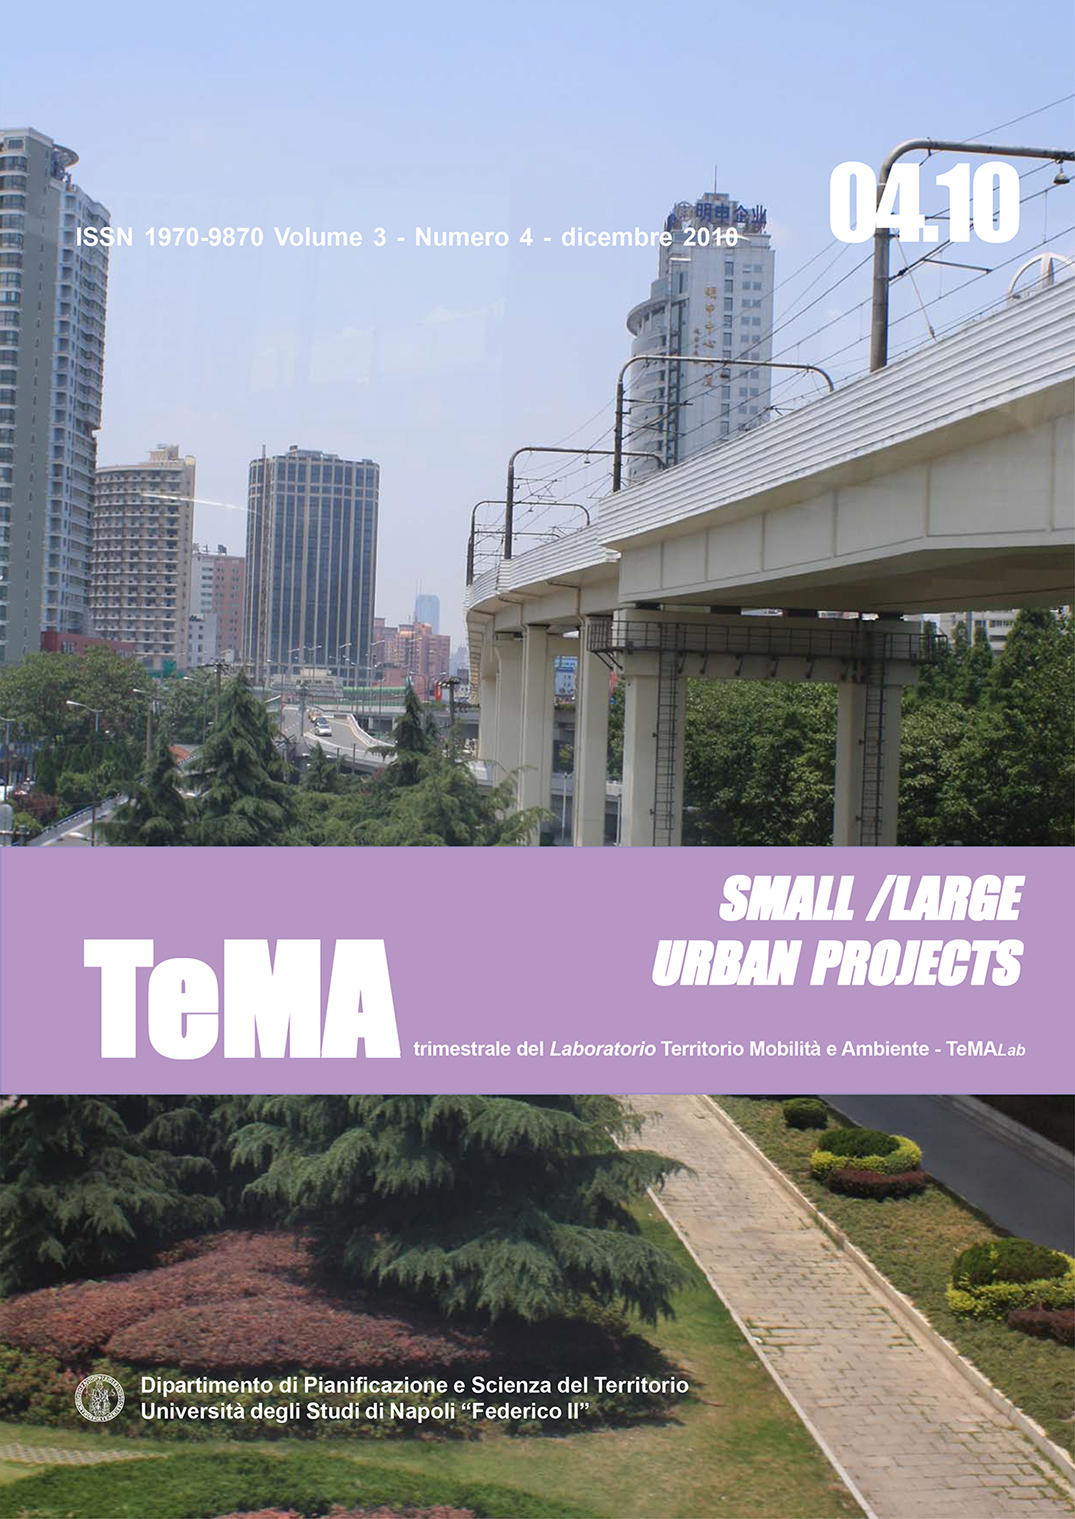 13_Vol 3, N° 4 (2010): Small/Large Urban Projects